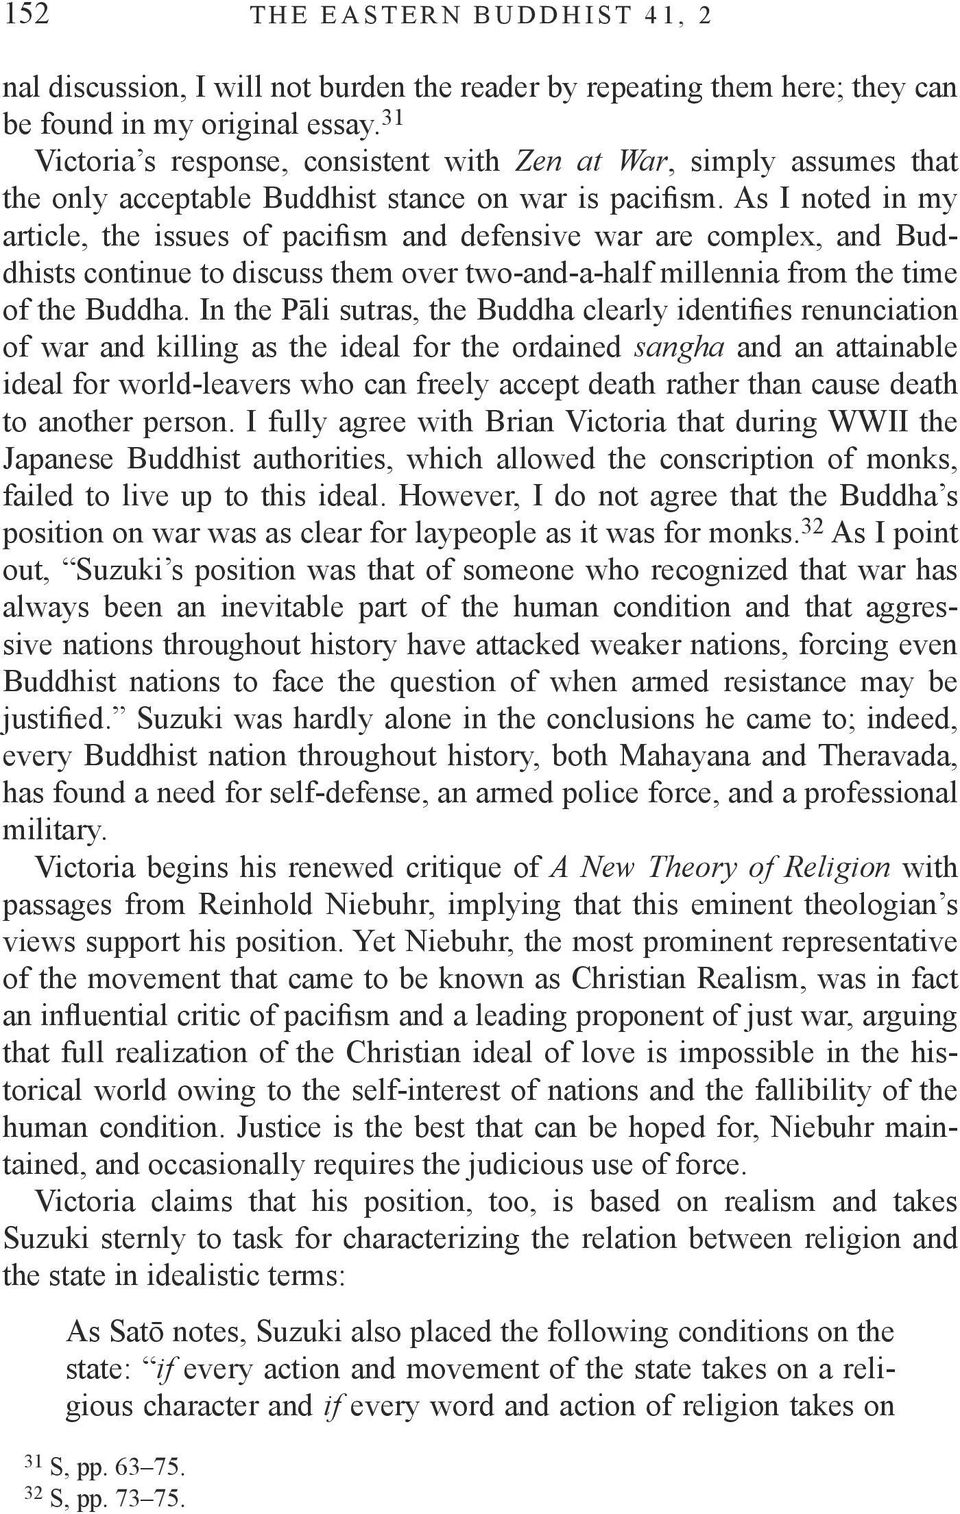 As I noted in my article, the issues of pacifism and defensive war are complex, and Buddhists continue to discuss them over two-and-a-half millennia from the time of the Buddha.